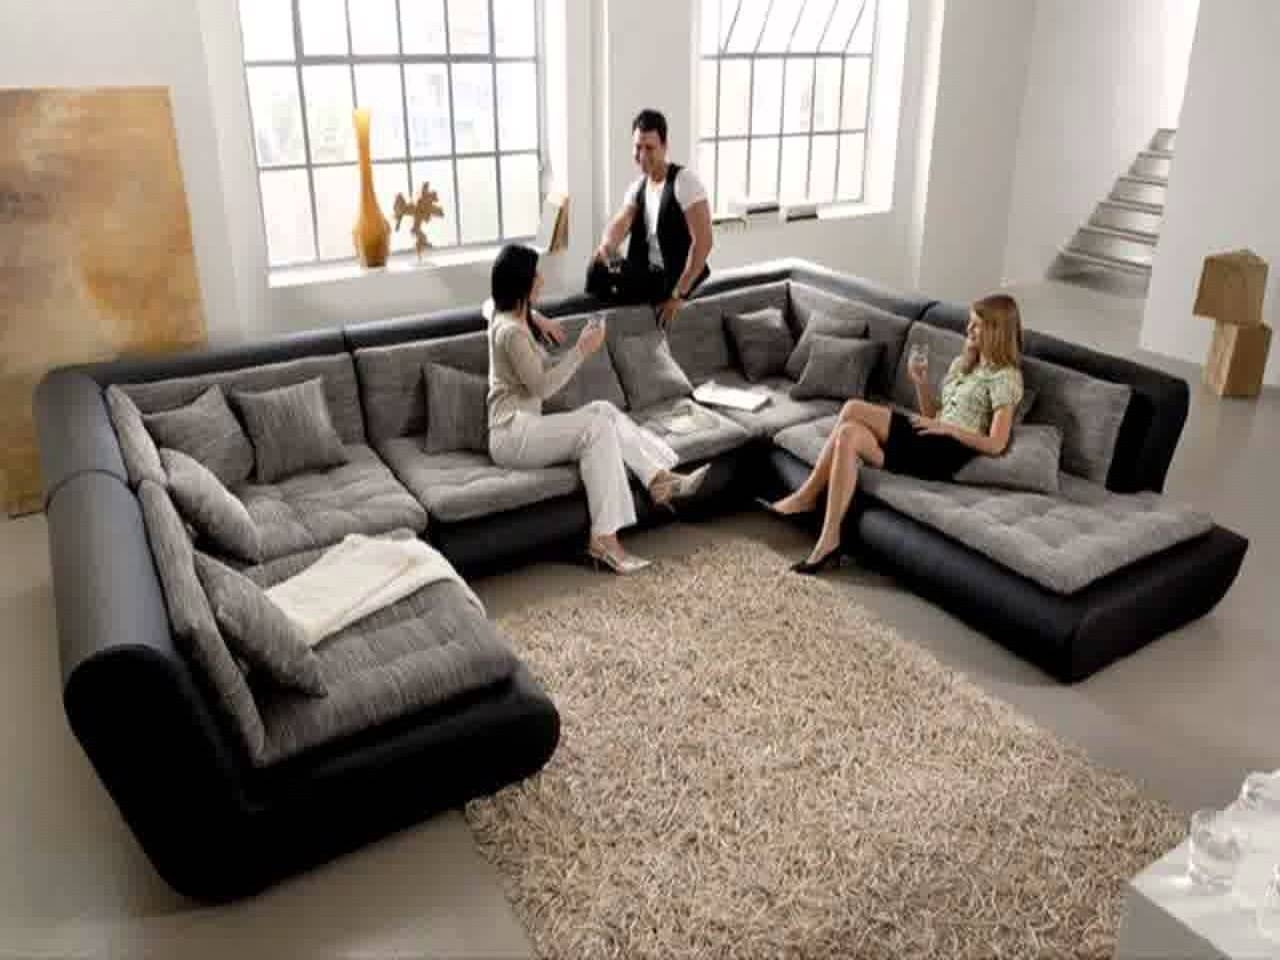 Sectional Sofas Bassett Youtube Best Sectional Sofa Brands | Freedom To for Sectional Sofas at Bassett (Image 13 of 15)